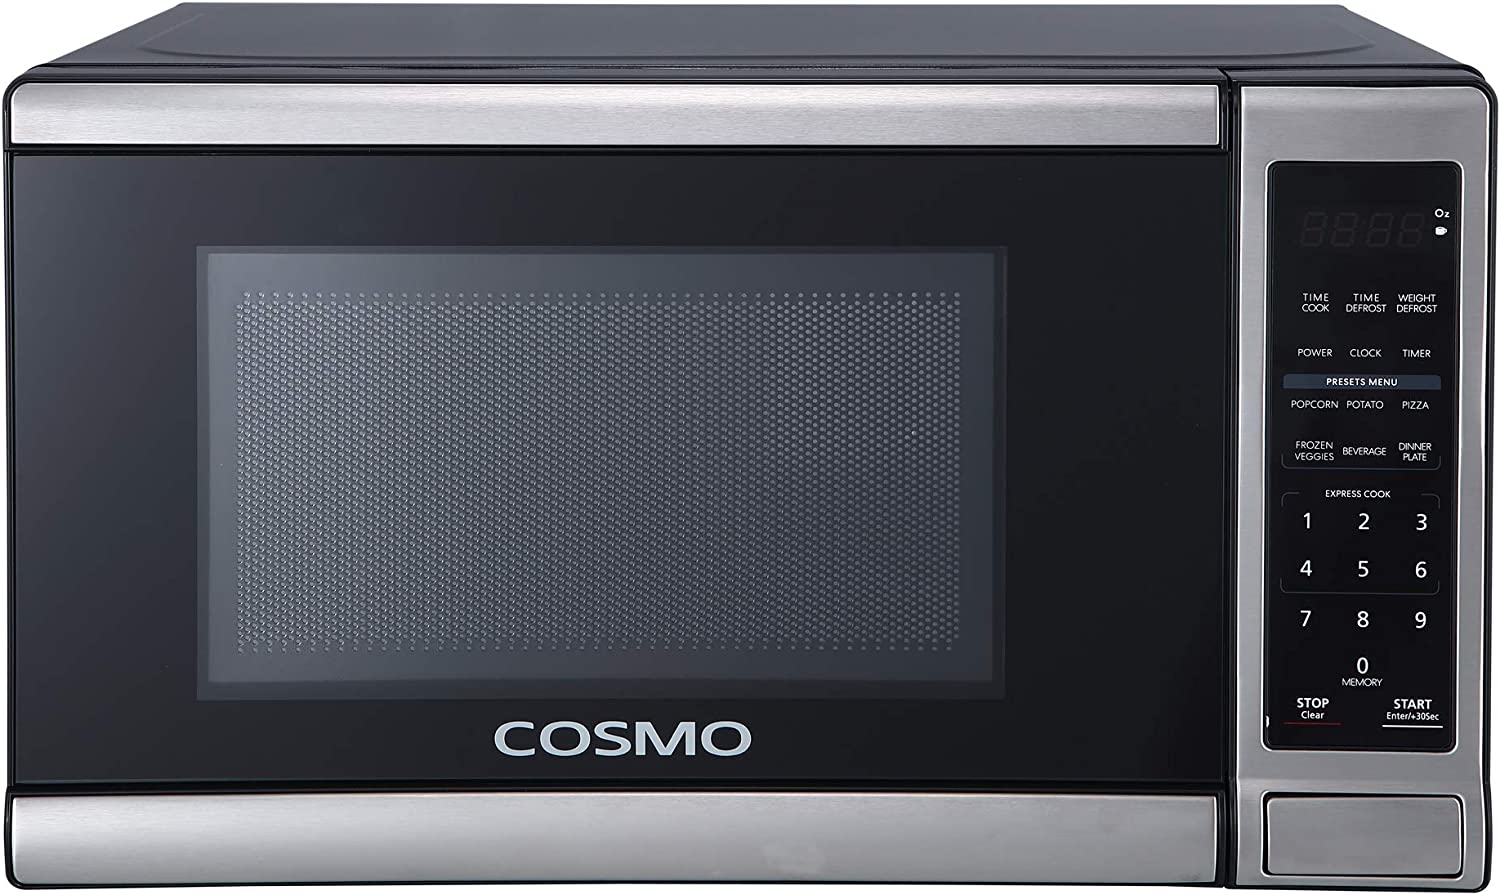 Cosmo COS-07CTMSSB Compact Countertop Microwave Oven with Touch Presets, Express Cook Buttons, 700W & 0.7 cu. ft. Capacity, 17 inch, Stainless Steel